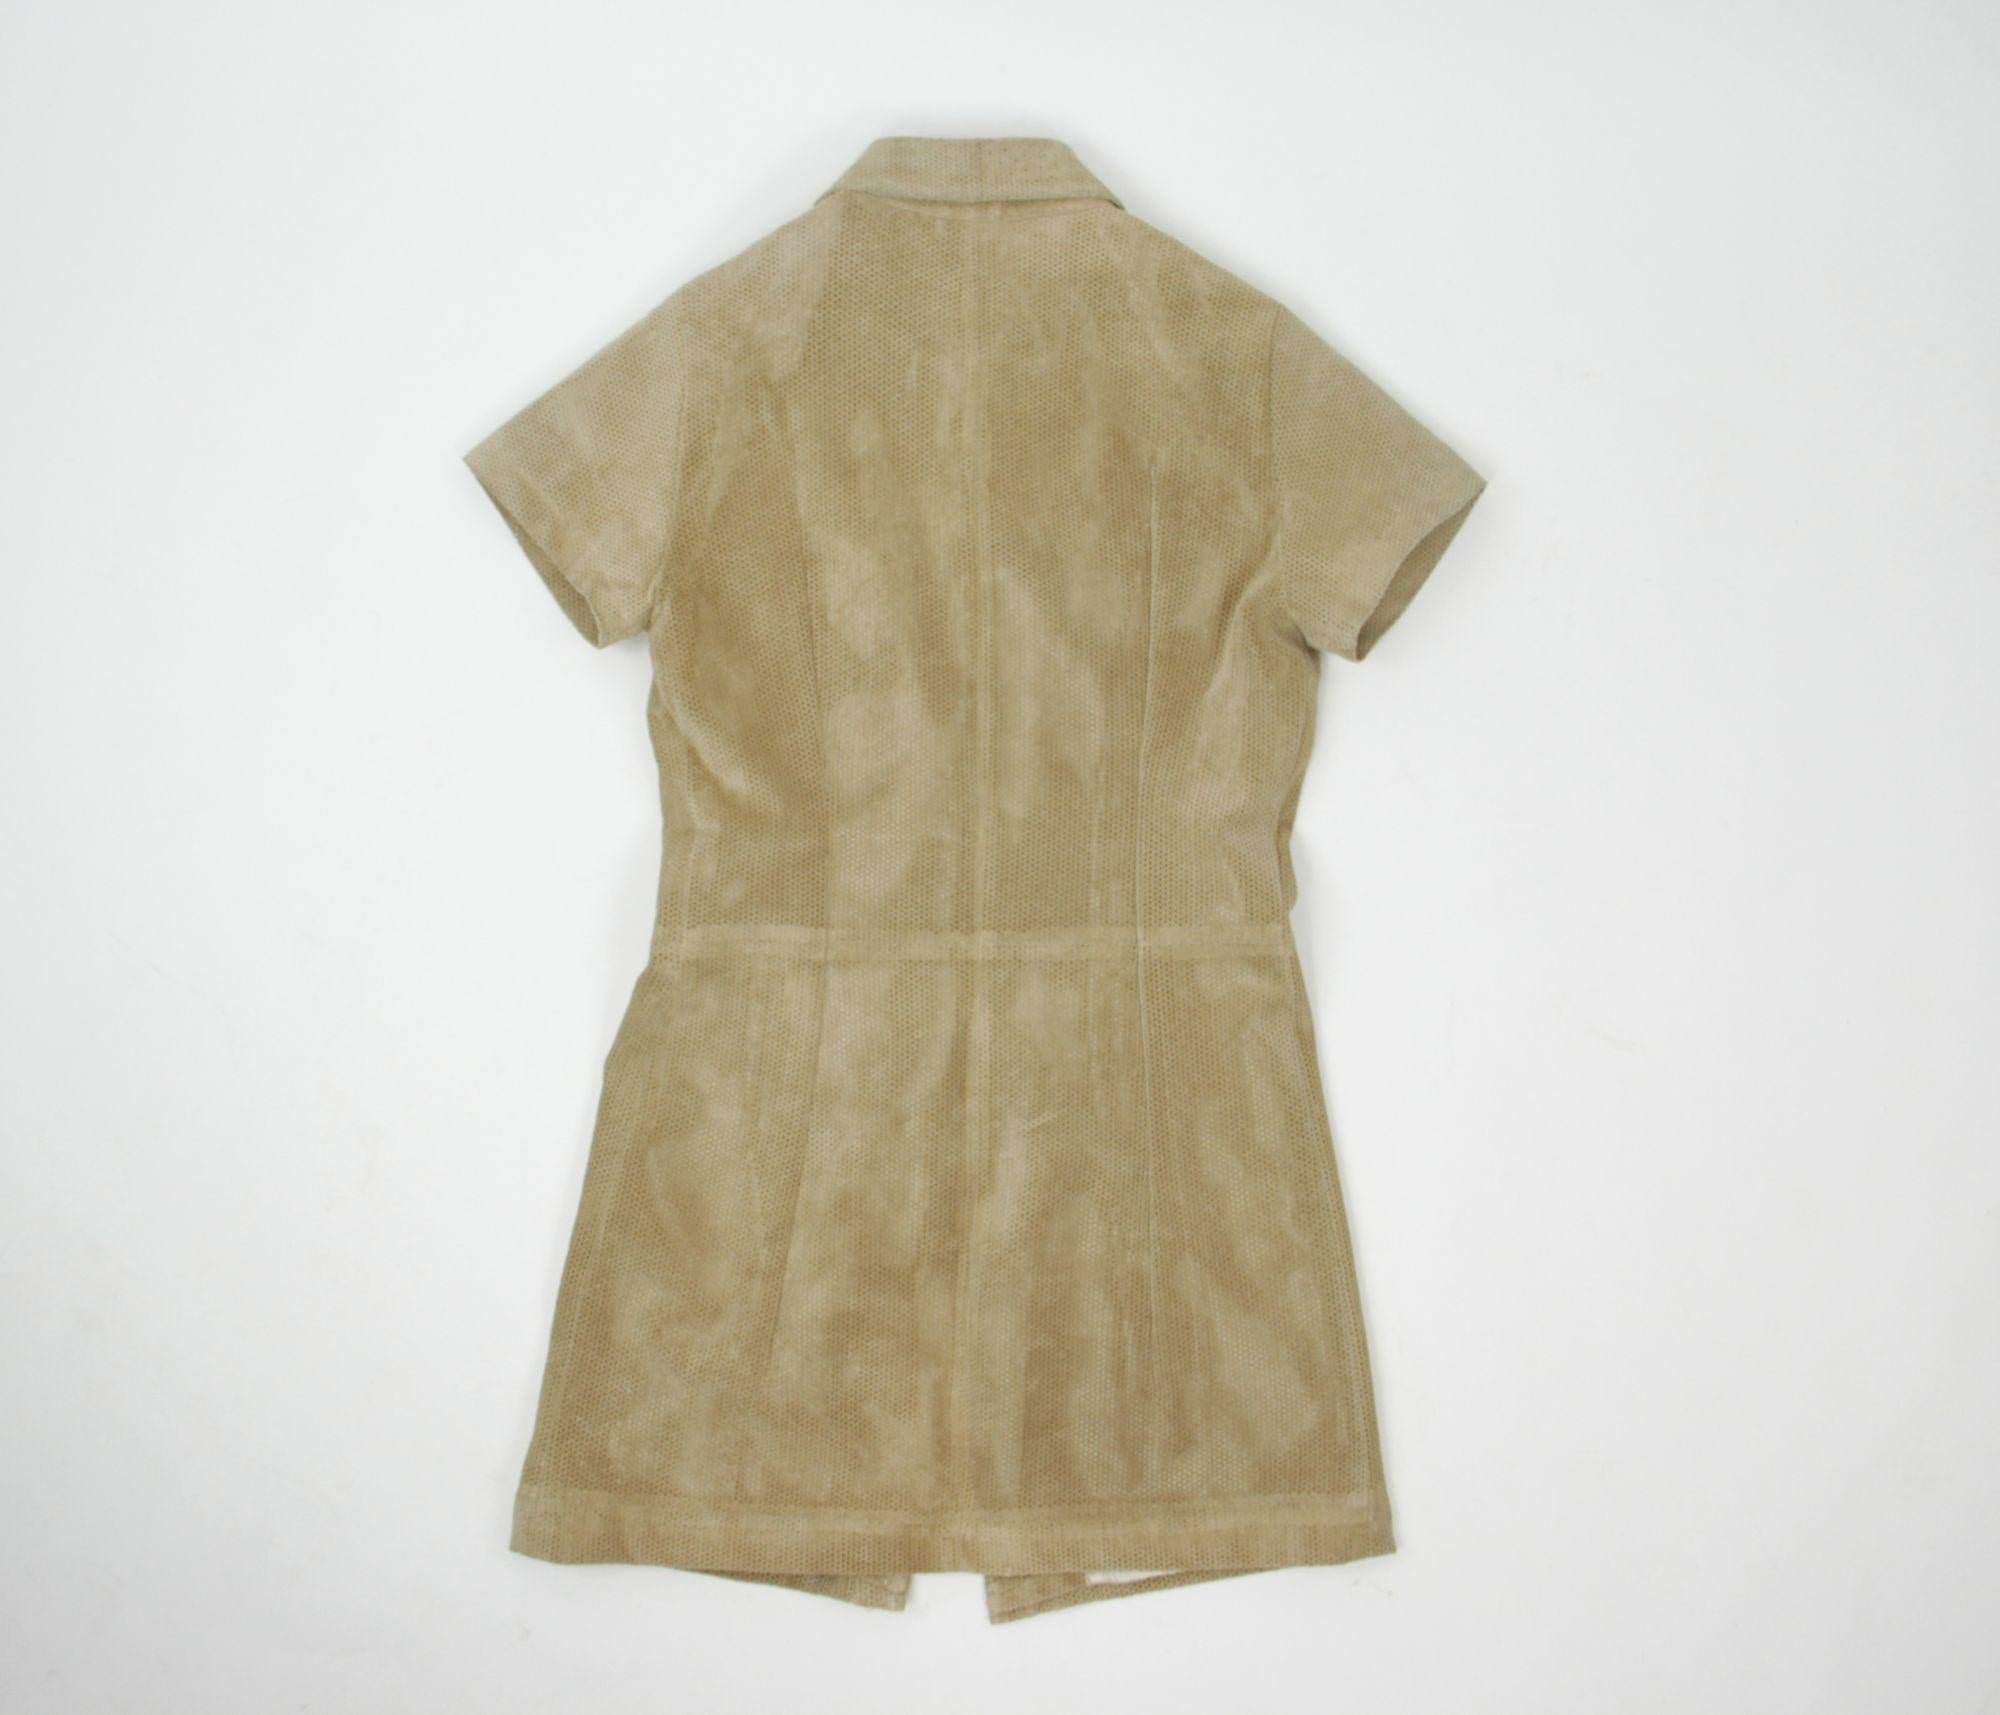 Perforated Suede Leather Mini Shirt Dress, Size S